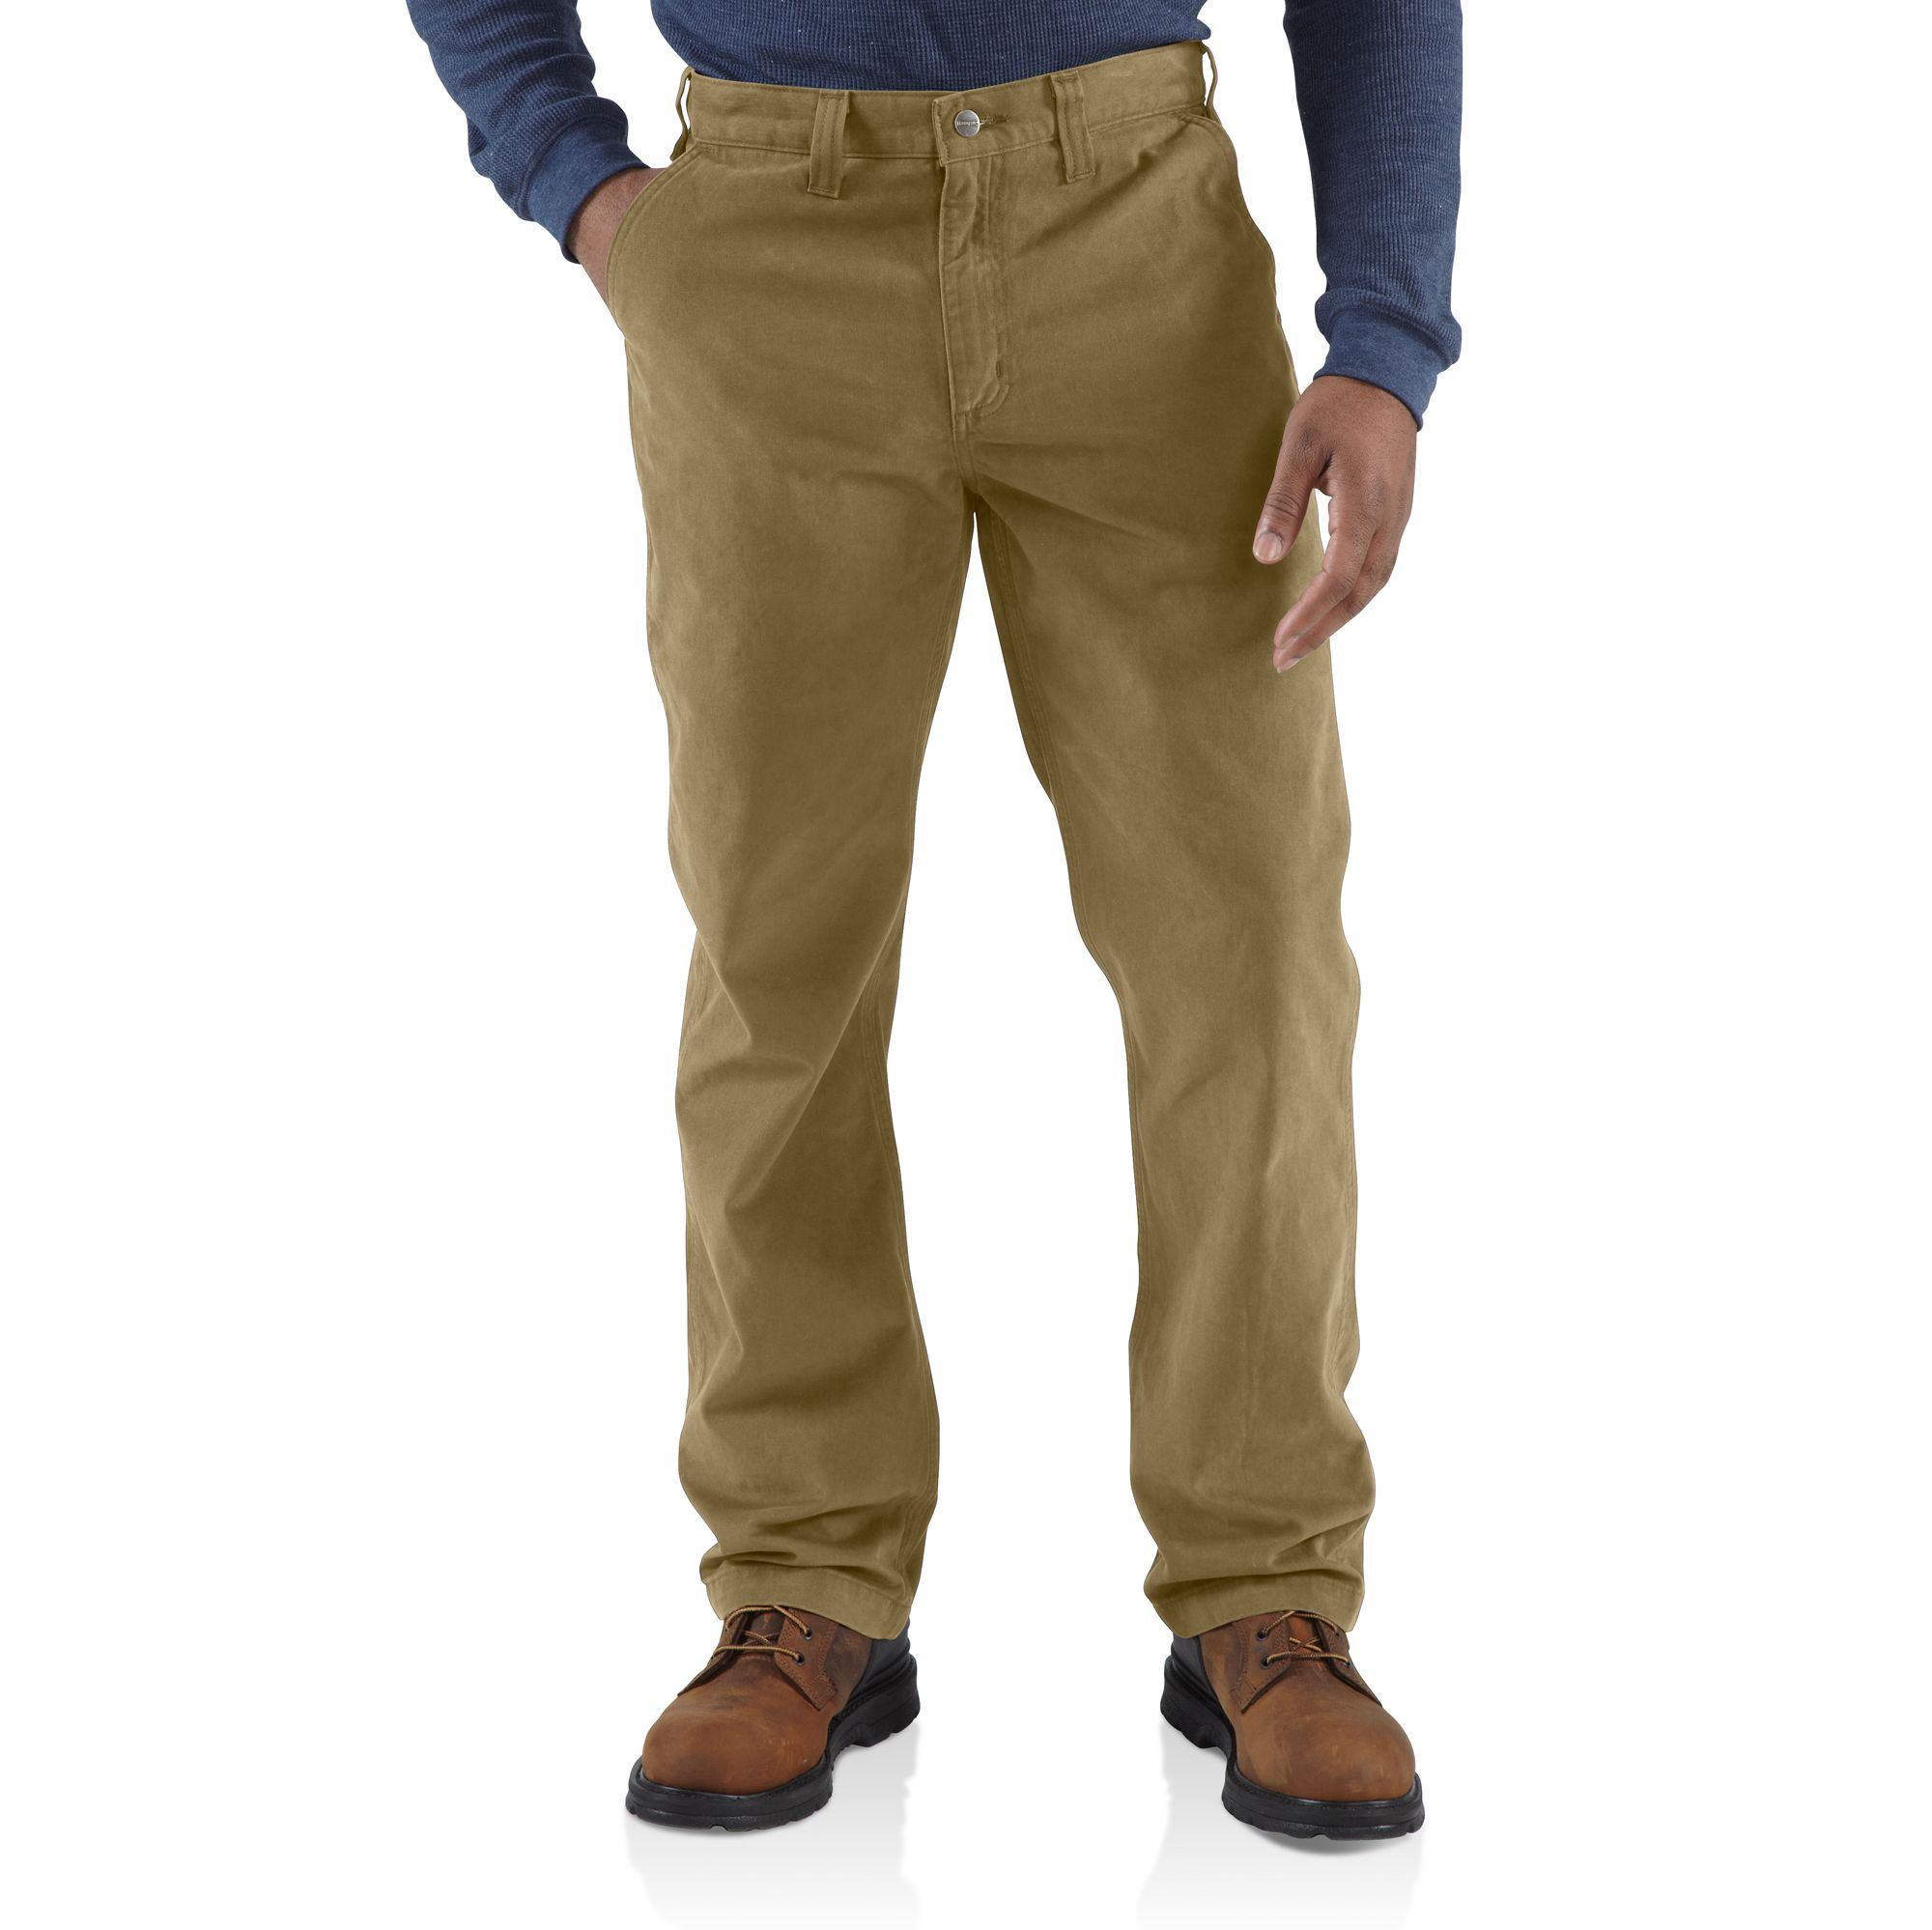 Carhartt Men's Rugged Work Khaki Pant, 38 x 34, Relaxed Fit ...